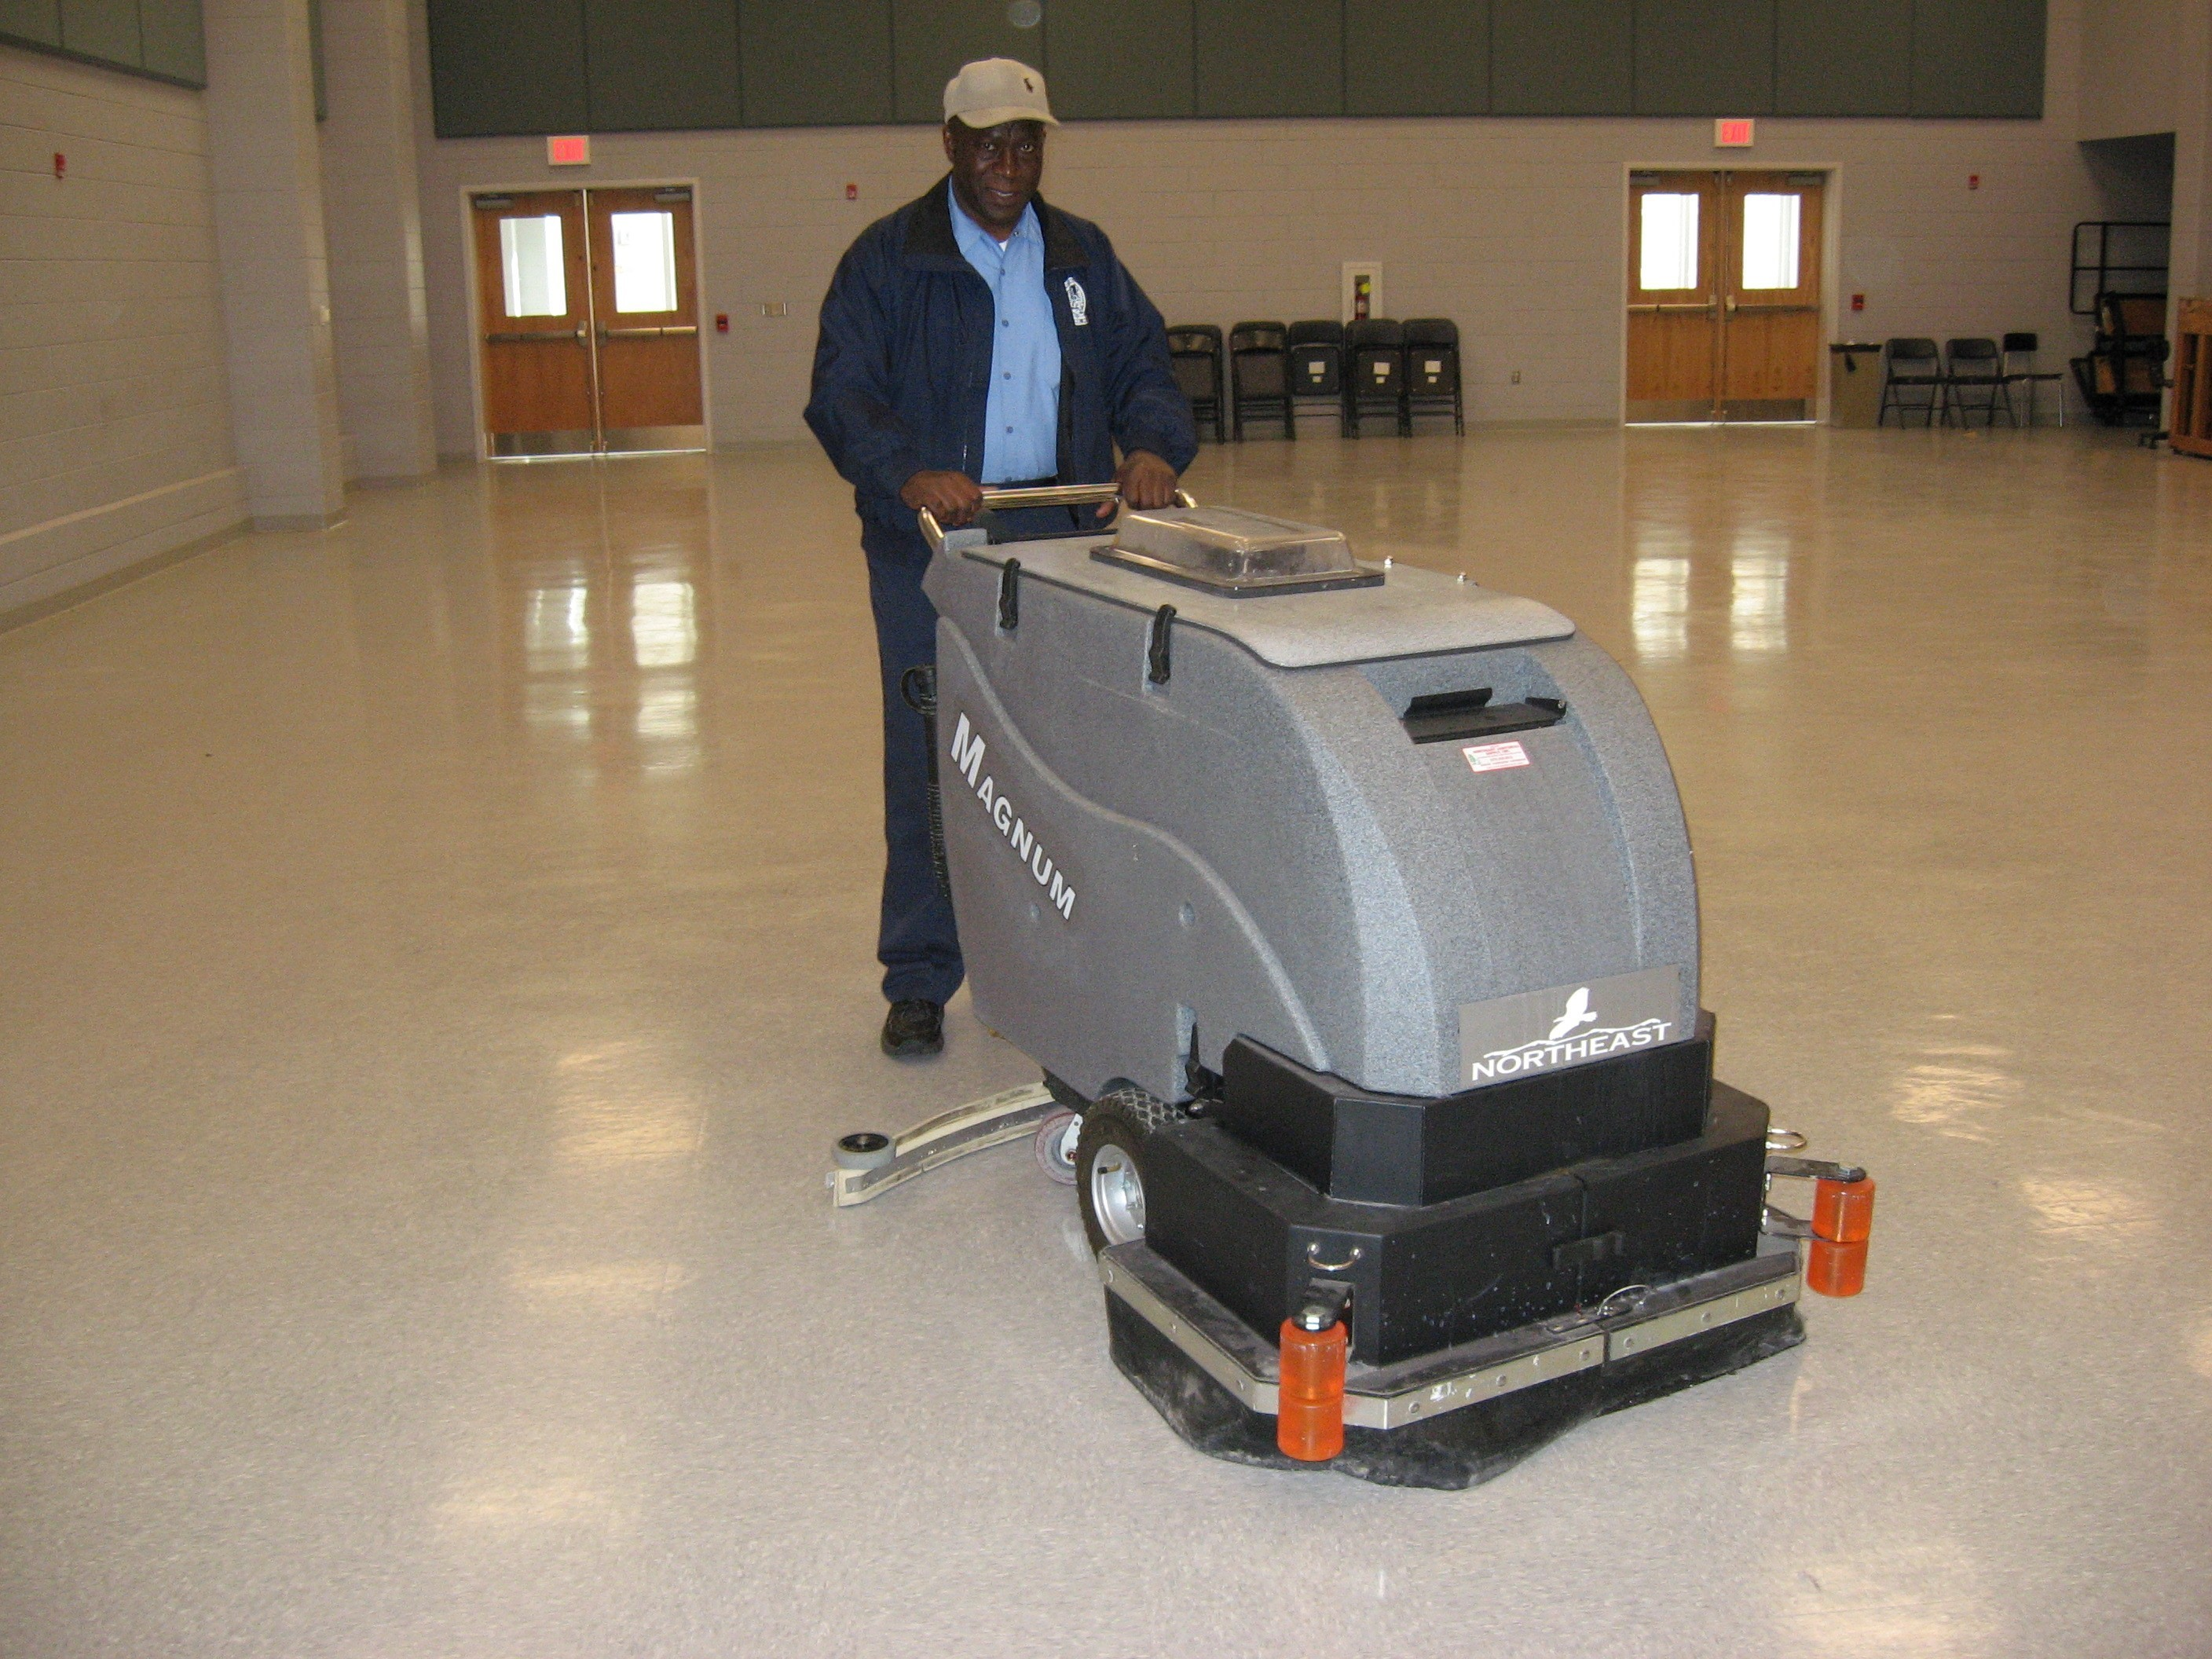 new cleaning with latest iso scrubber aqueous chemical tomcat the floors in equipment free preparation commercial floor see